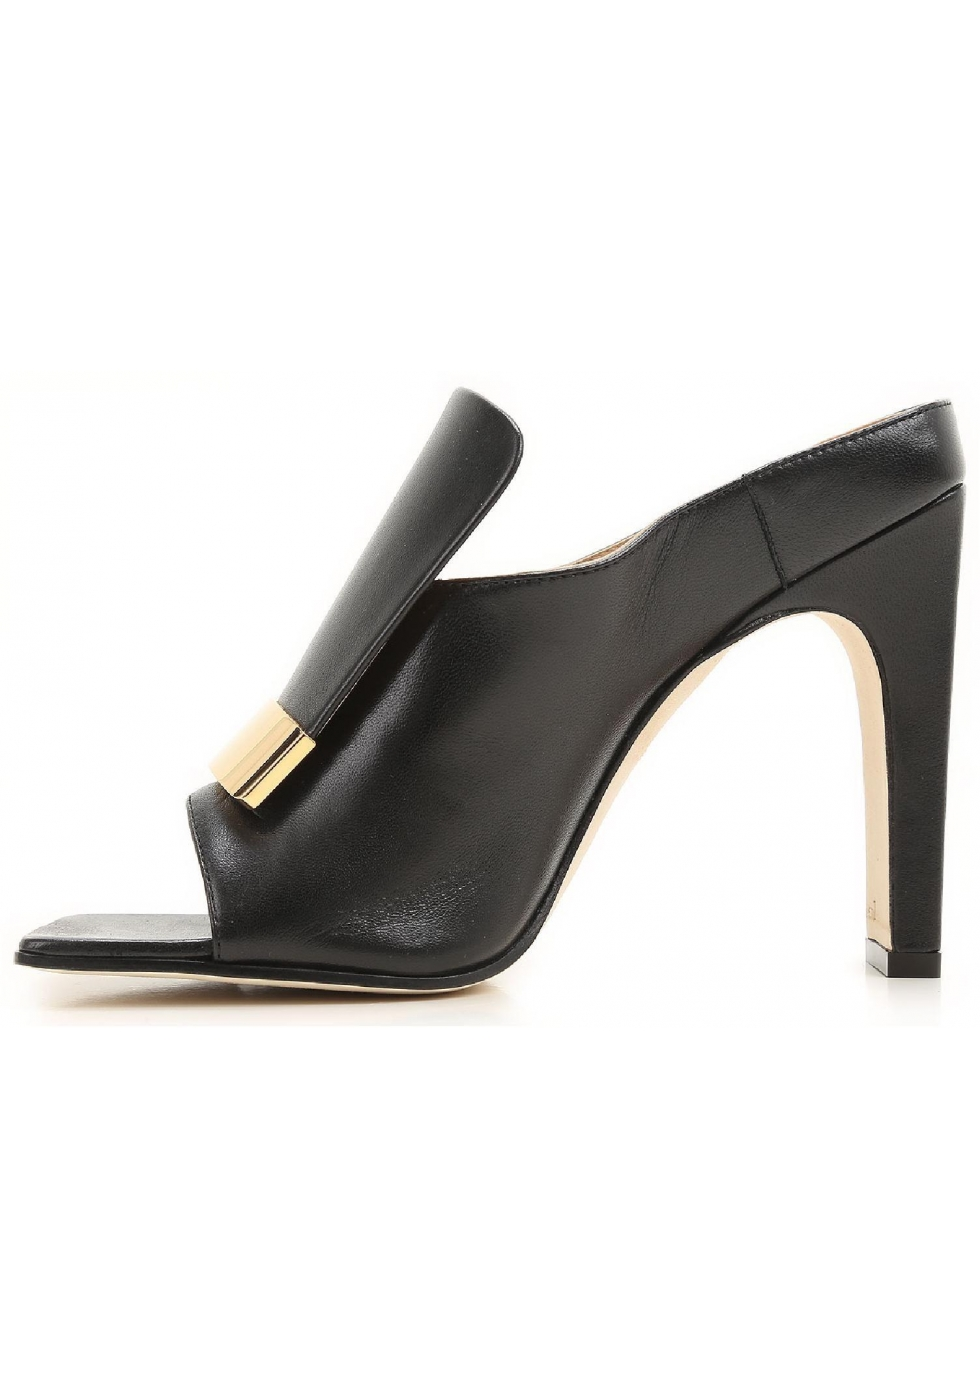 Sergio Rossi High Heels Mules In Black Leather Italian Boutique